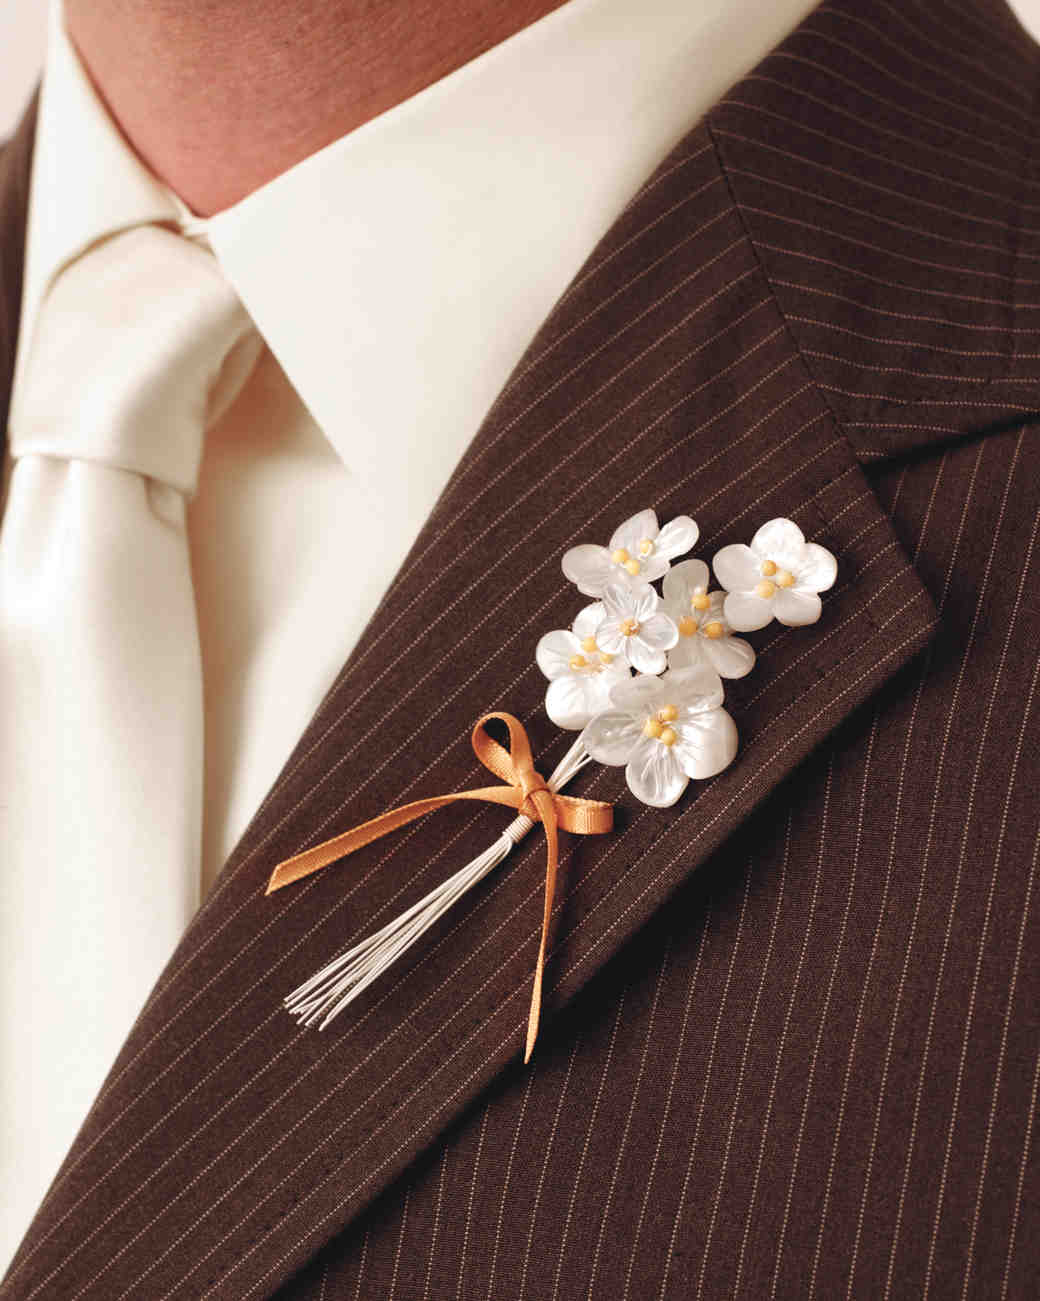 Diy boutonnire ideas for your wedding martha stewart weddings solutioingenieria Image collections